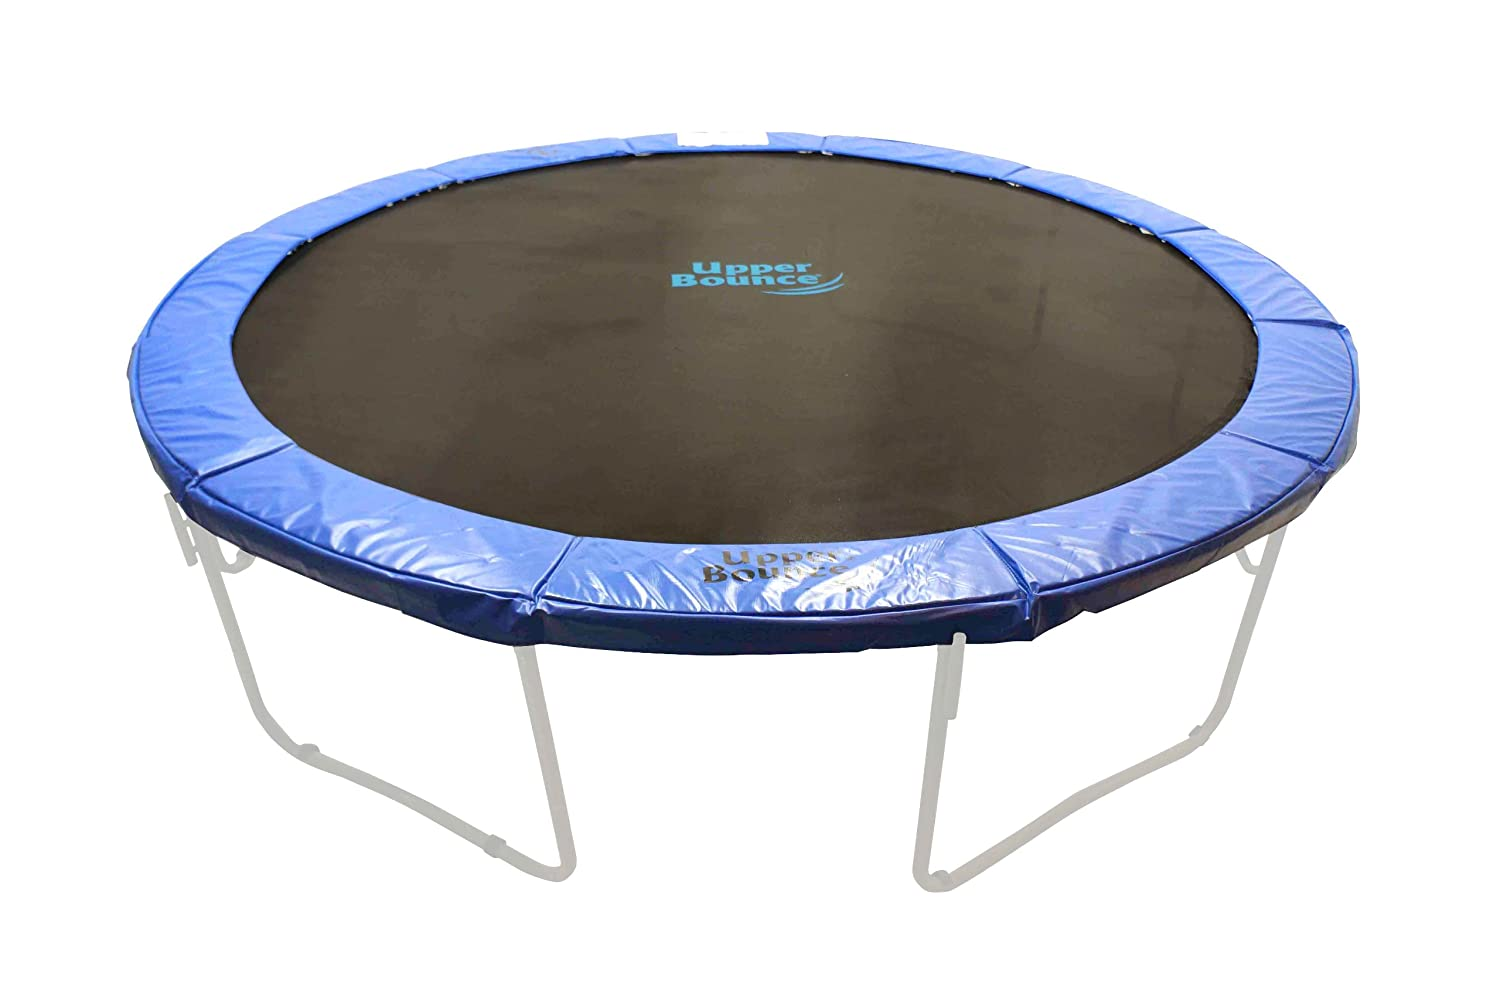 15' Super Trampoline Safety Pad (Spring Cover) Fits for 15 FT. Round Trampoline Frames. 10 wide - Blue new inflatable bouncer bounce house with obstacle inflatble slide tunnel climbing wall trampoline for kids jumper castle